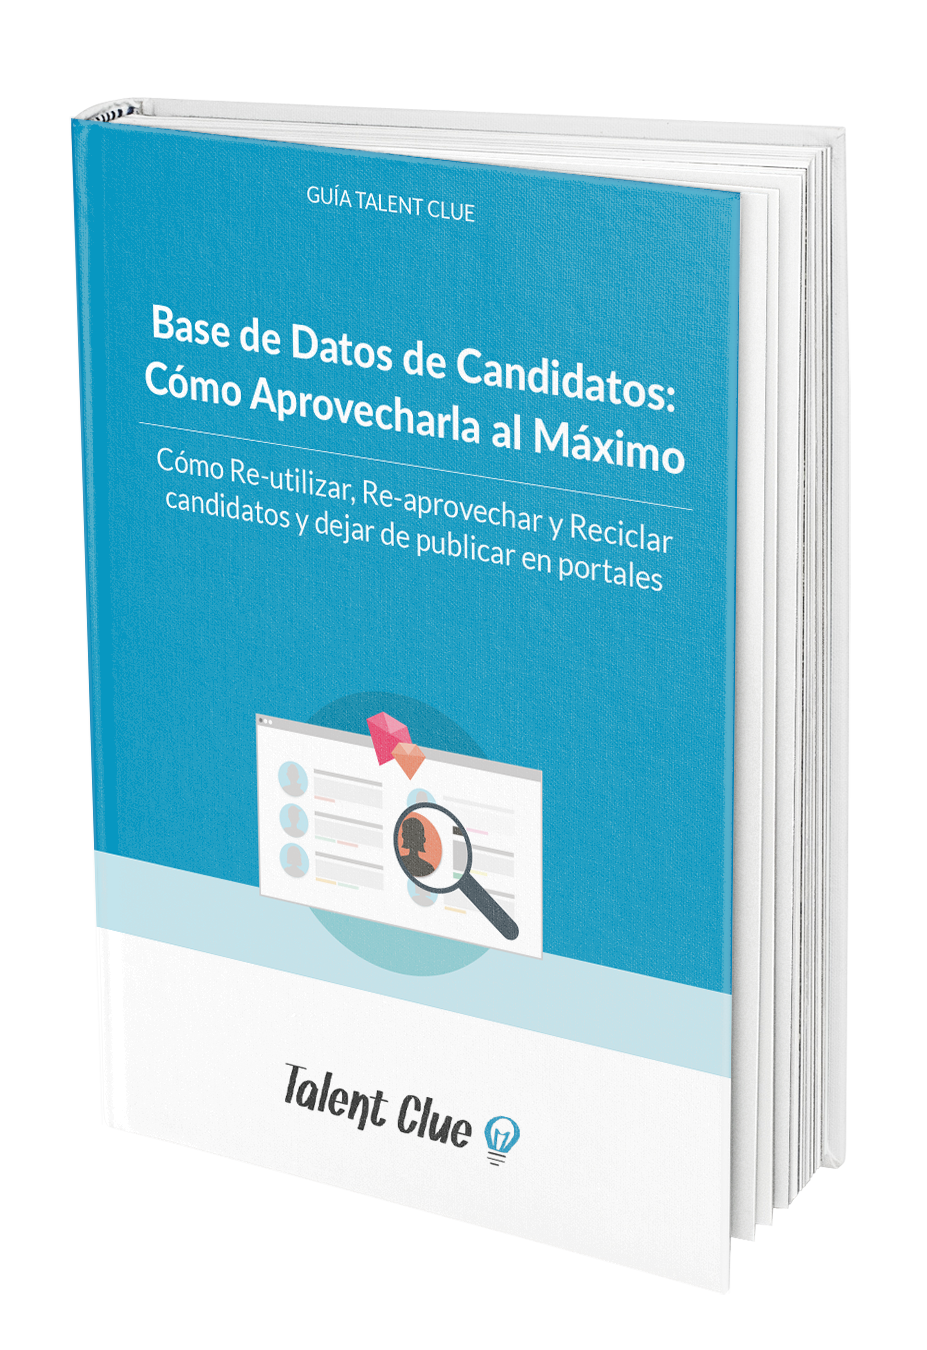 La Base de Datos de Candidatos Ideal